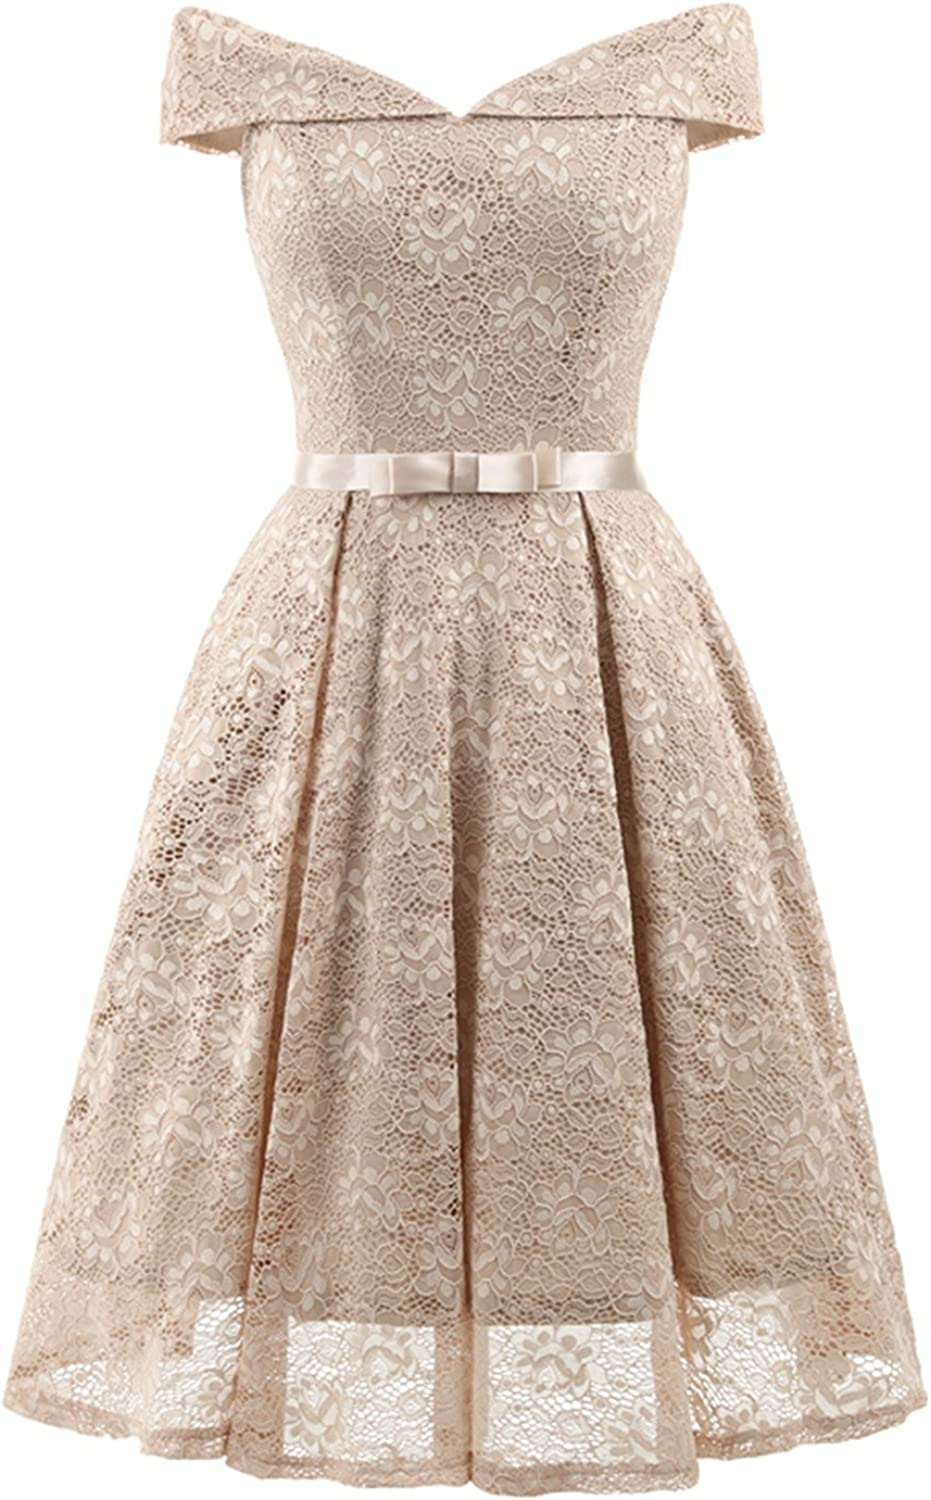 Chowsir Women Formal Bridesmaid Cocktail Party Prom Lace Midi Dress V-Neck Sleeveless